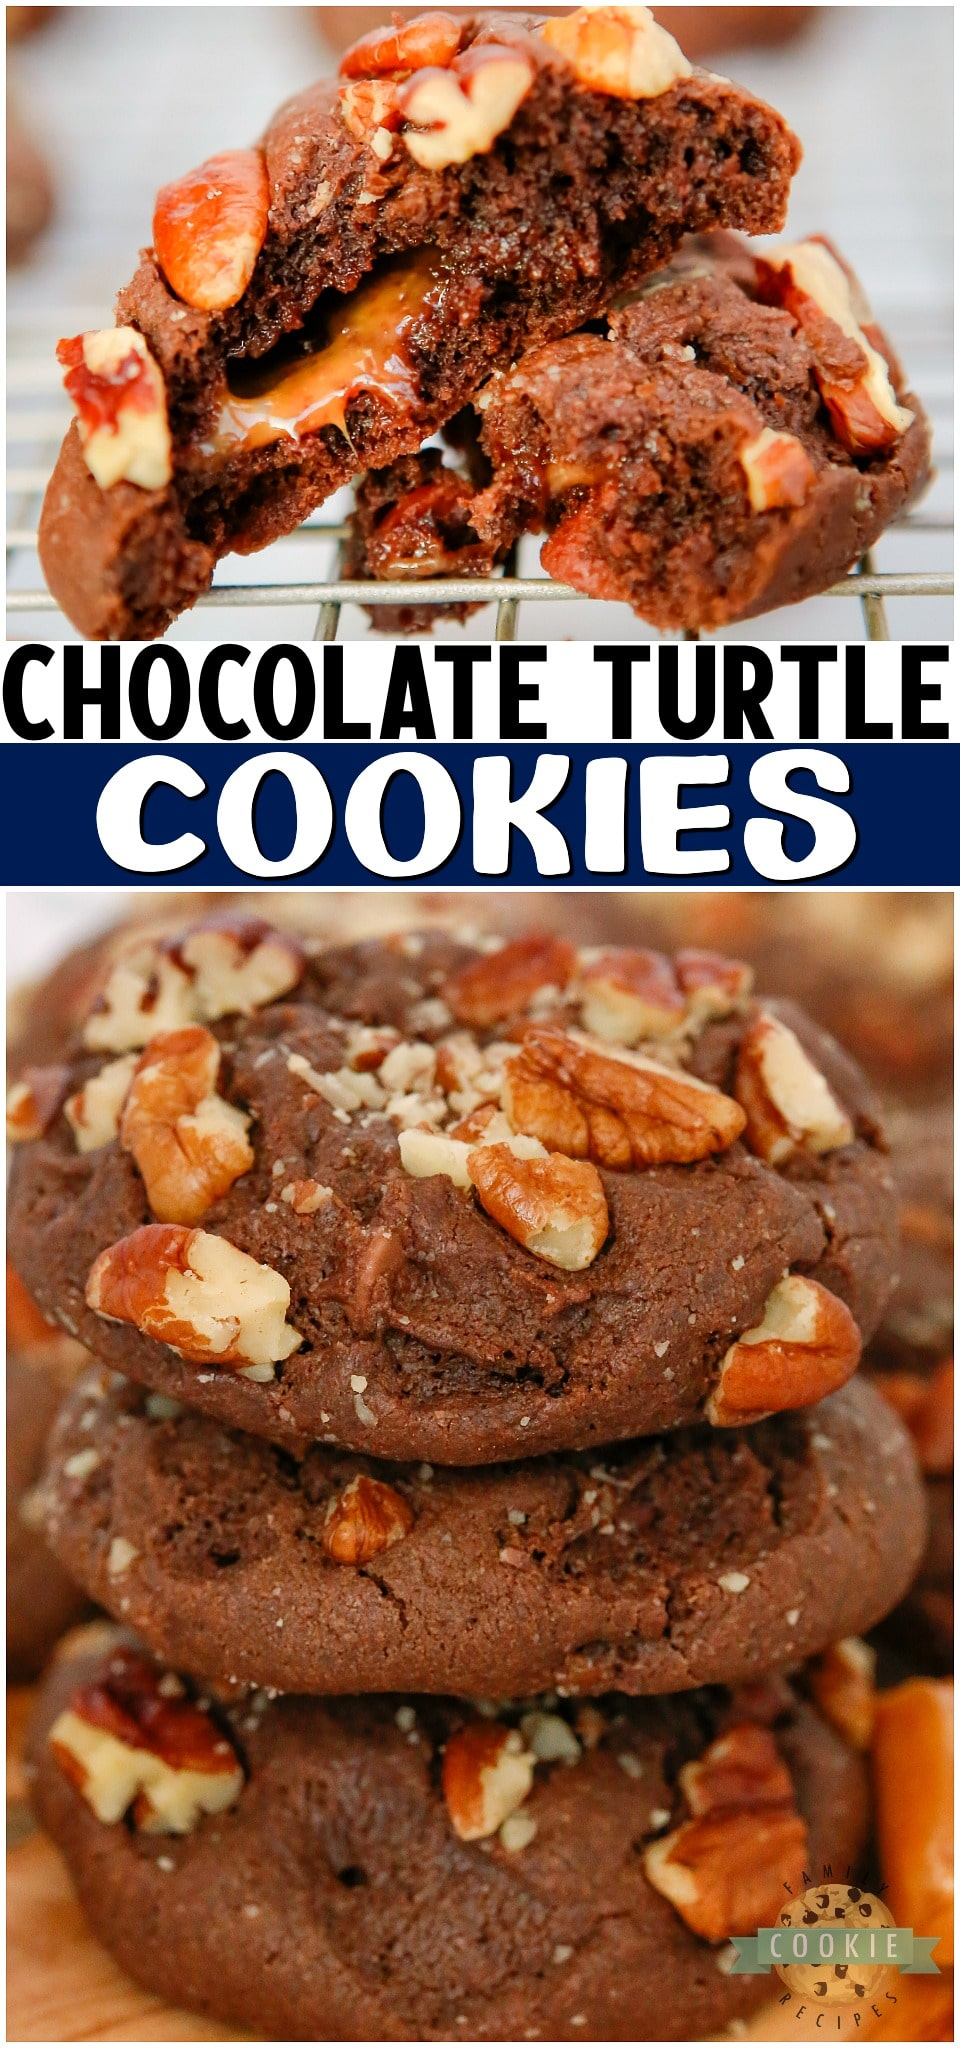 Chocolate Turtle Cookies are double chocolate chip cookies stuffed with caramel & pecans! Decadent Turtle Cookie recipe that everyone loves!